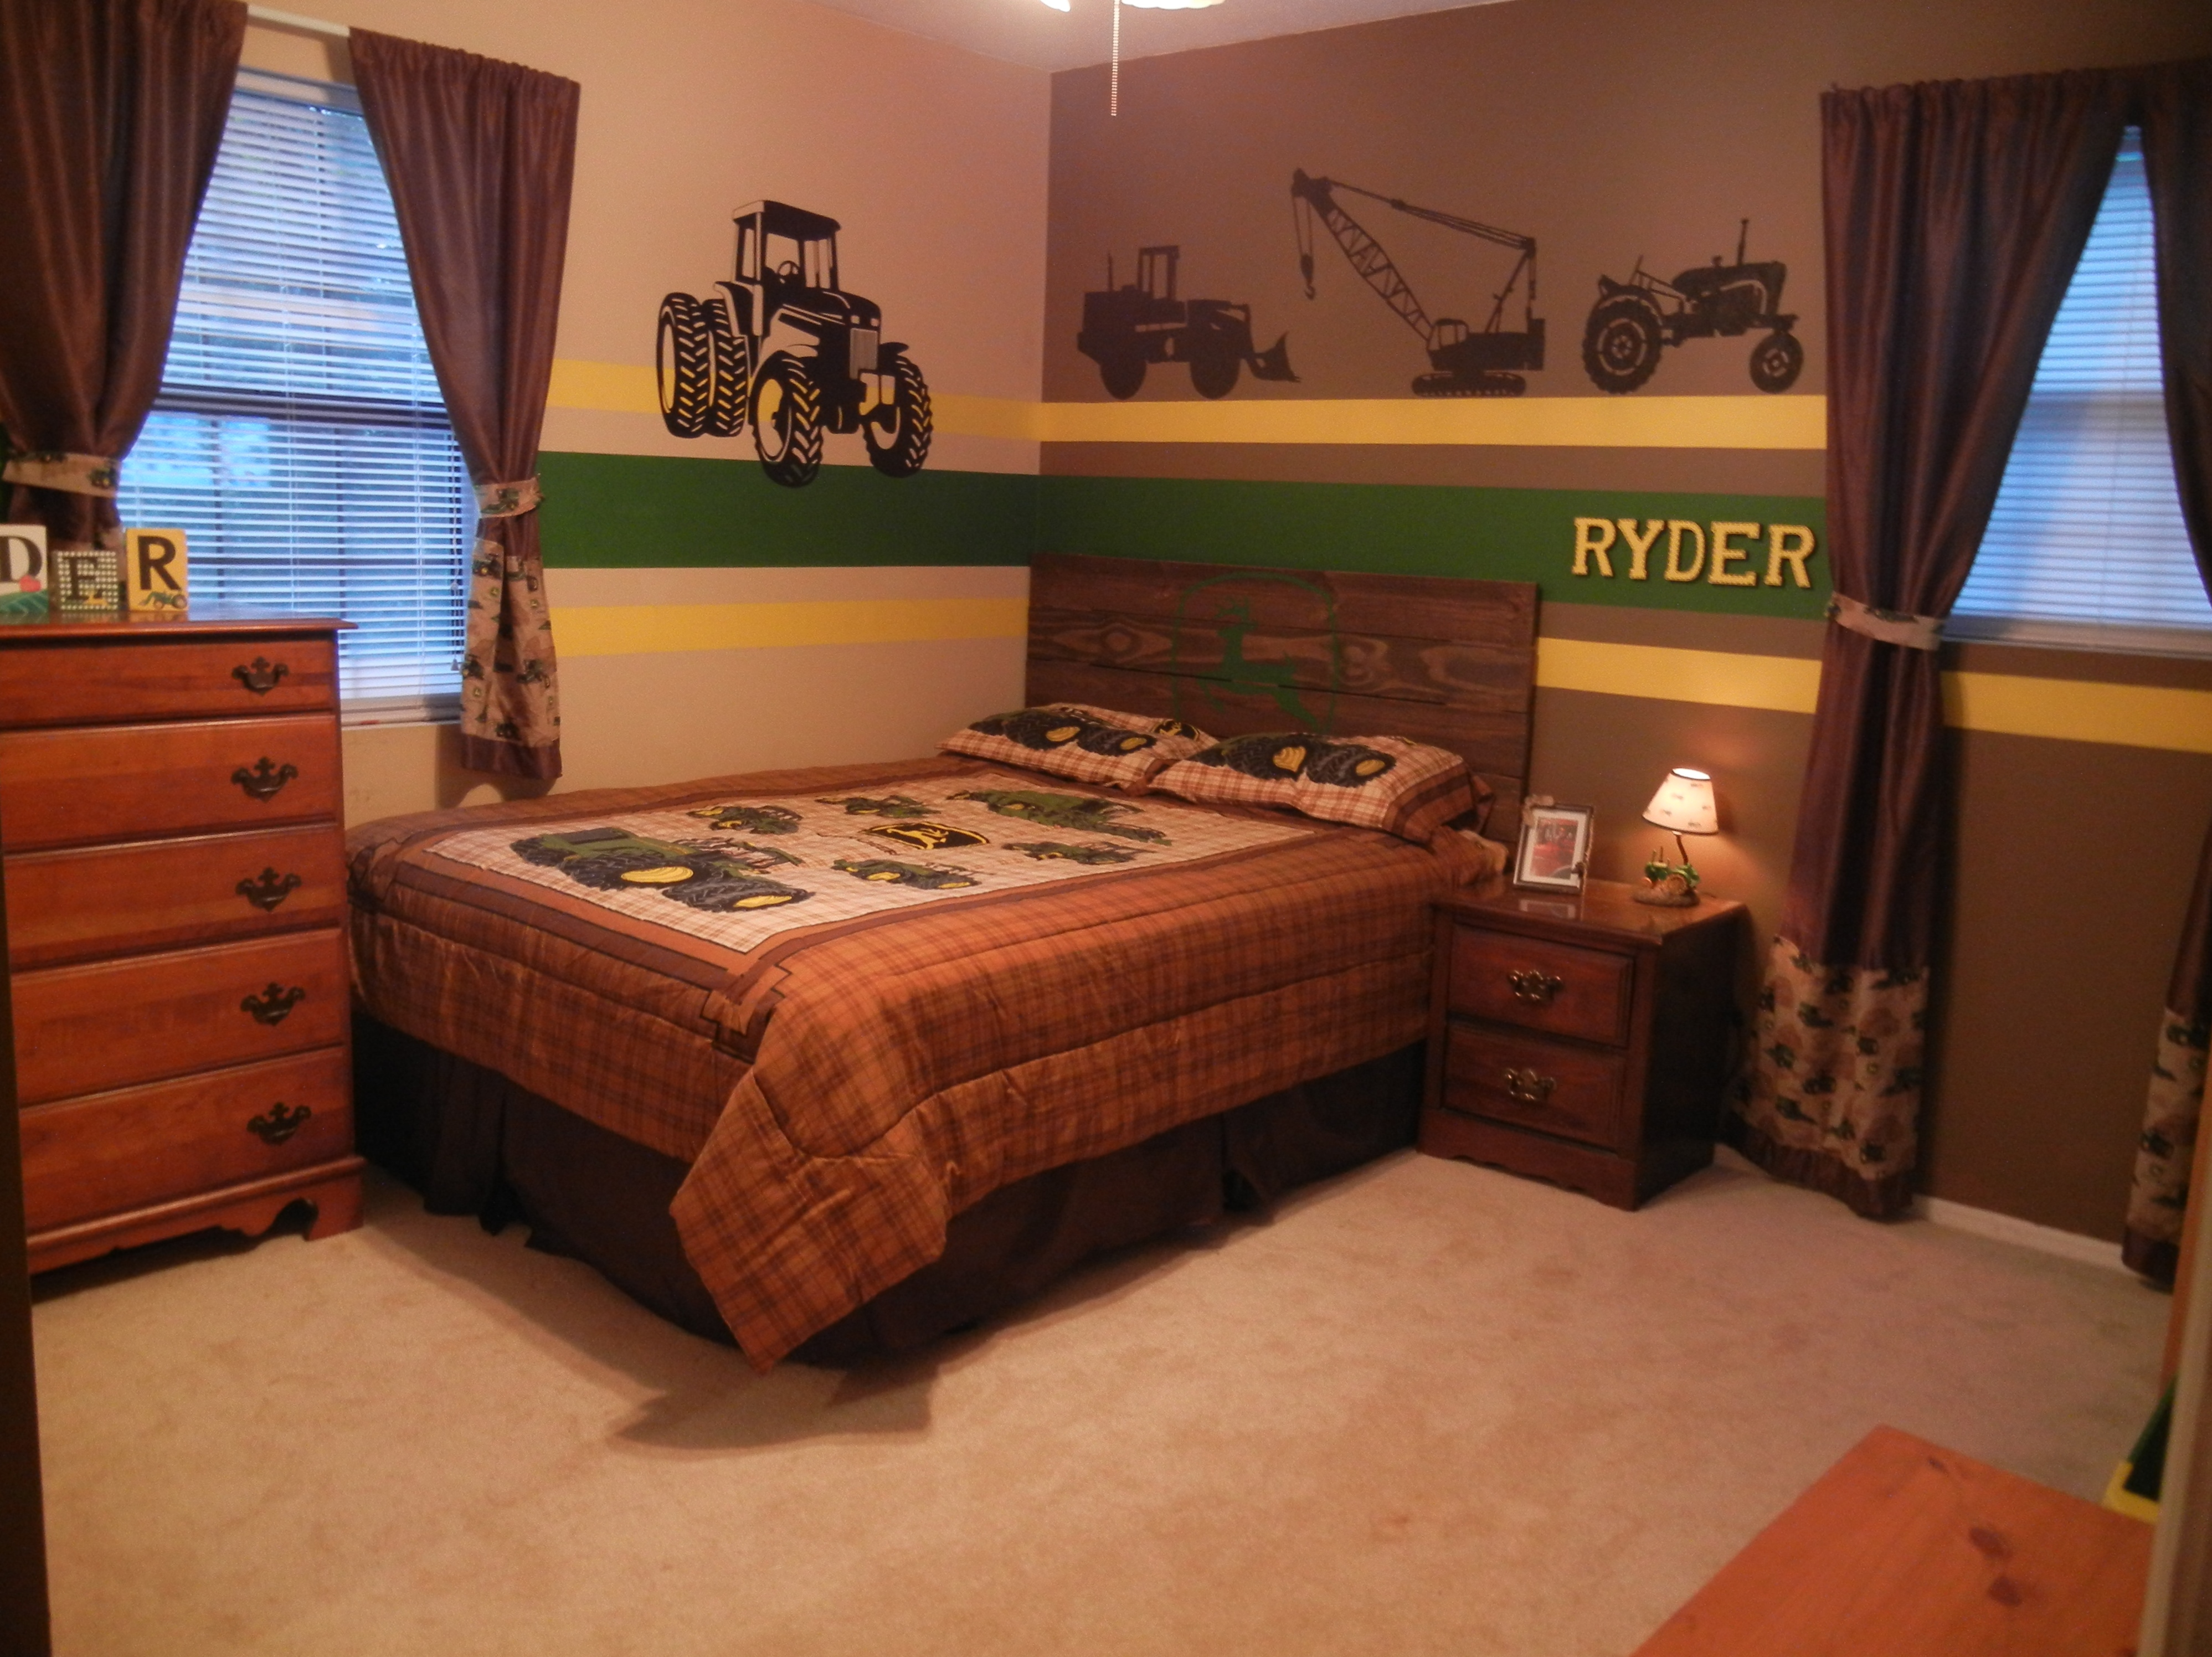 John Deere bedroom - tractors - little boy bedrooms | My Little B☺ys ...